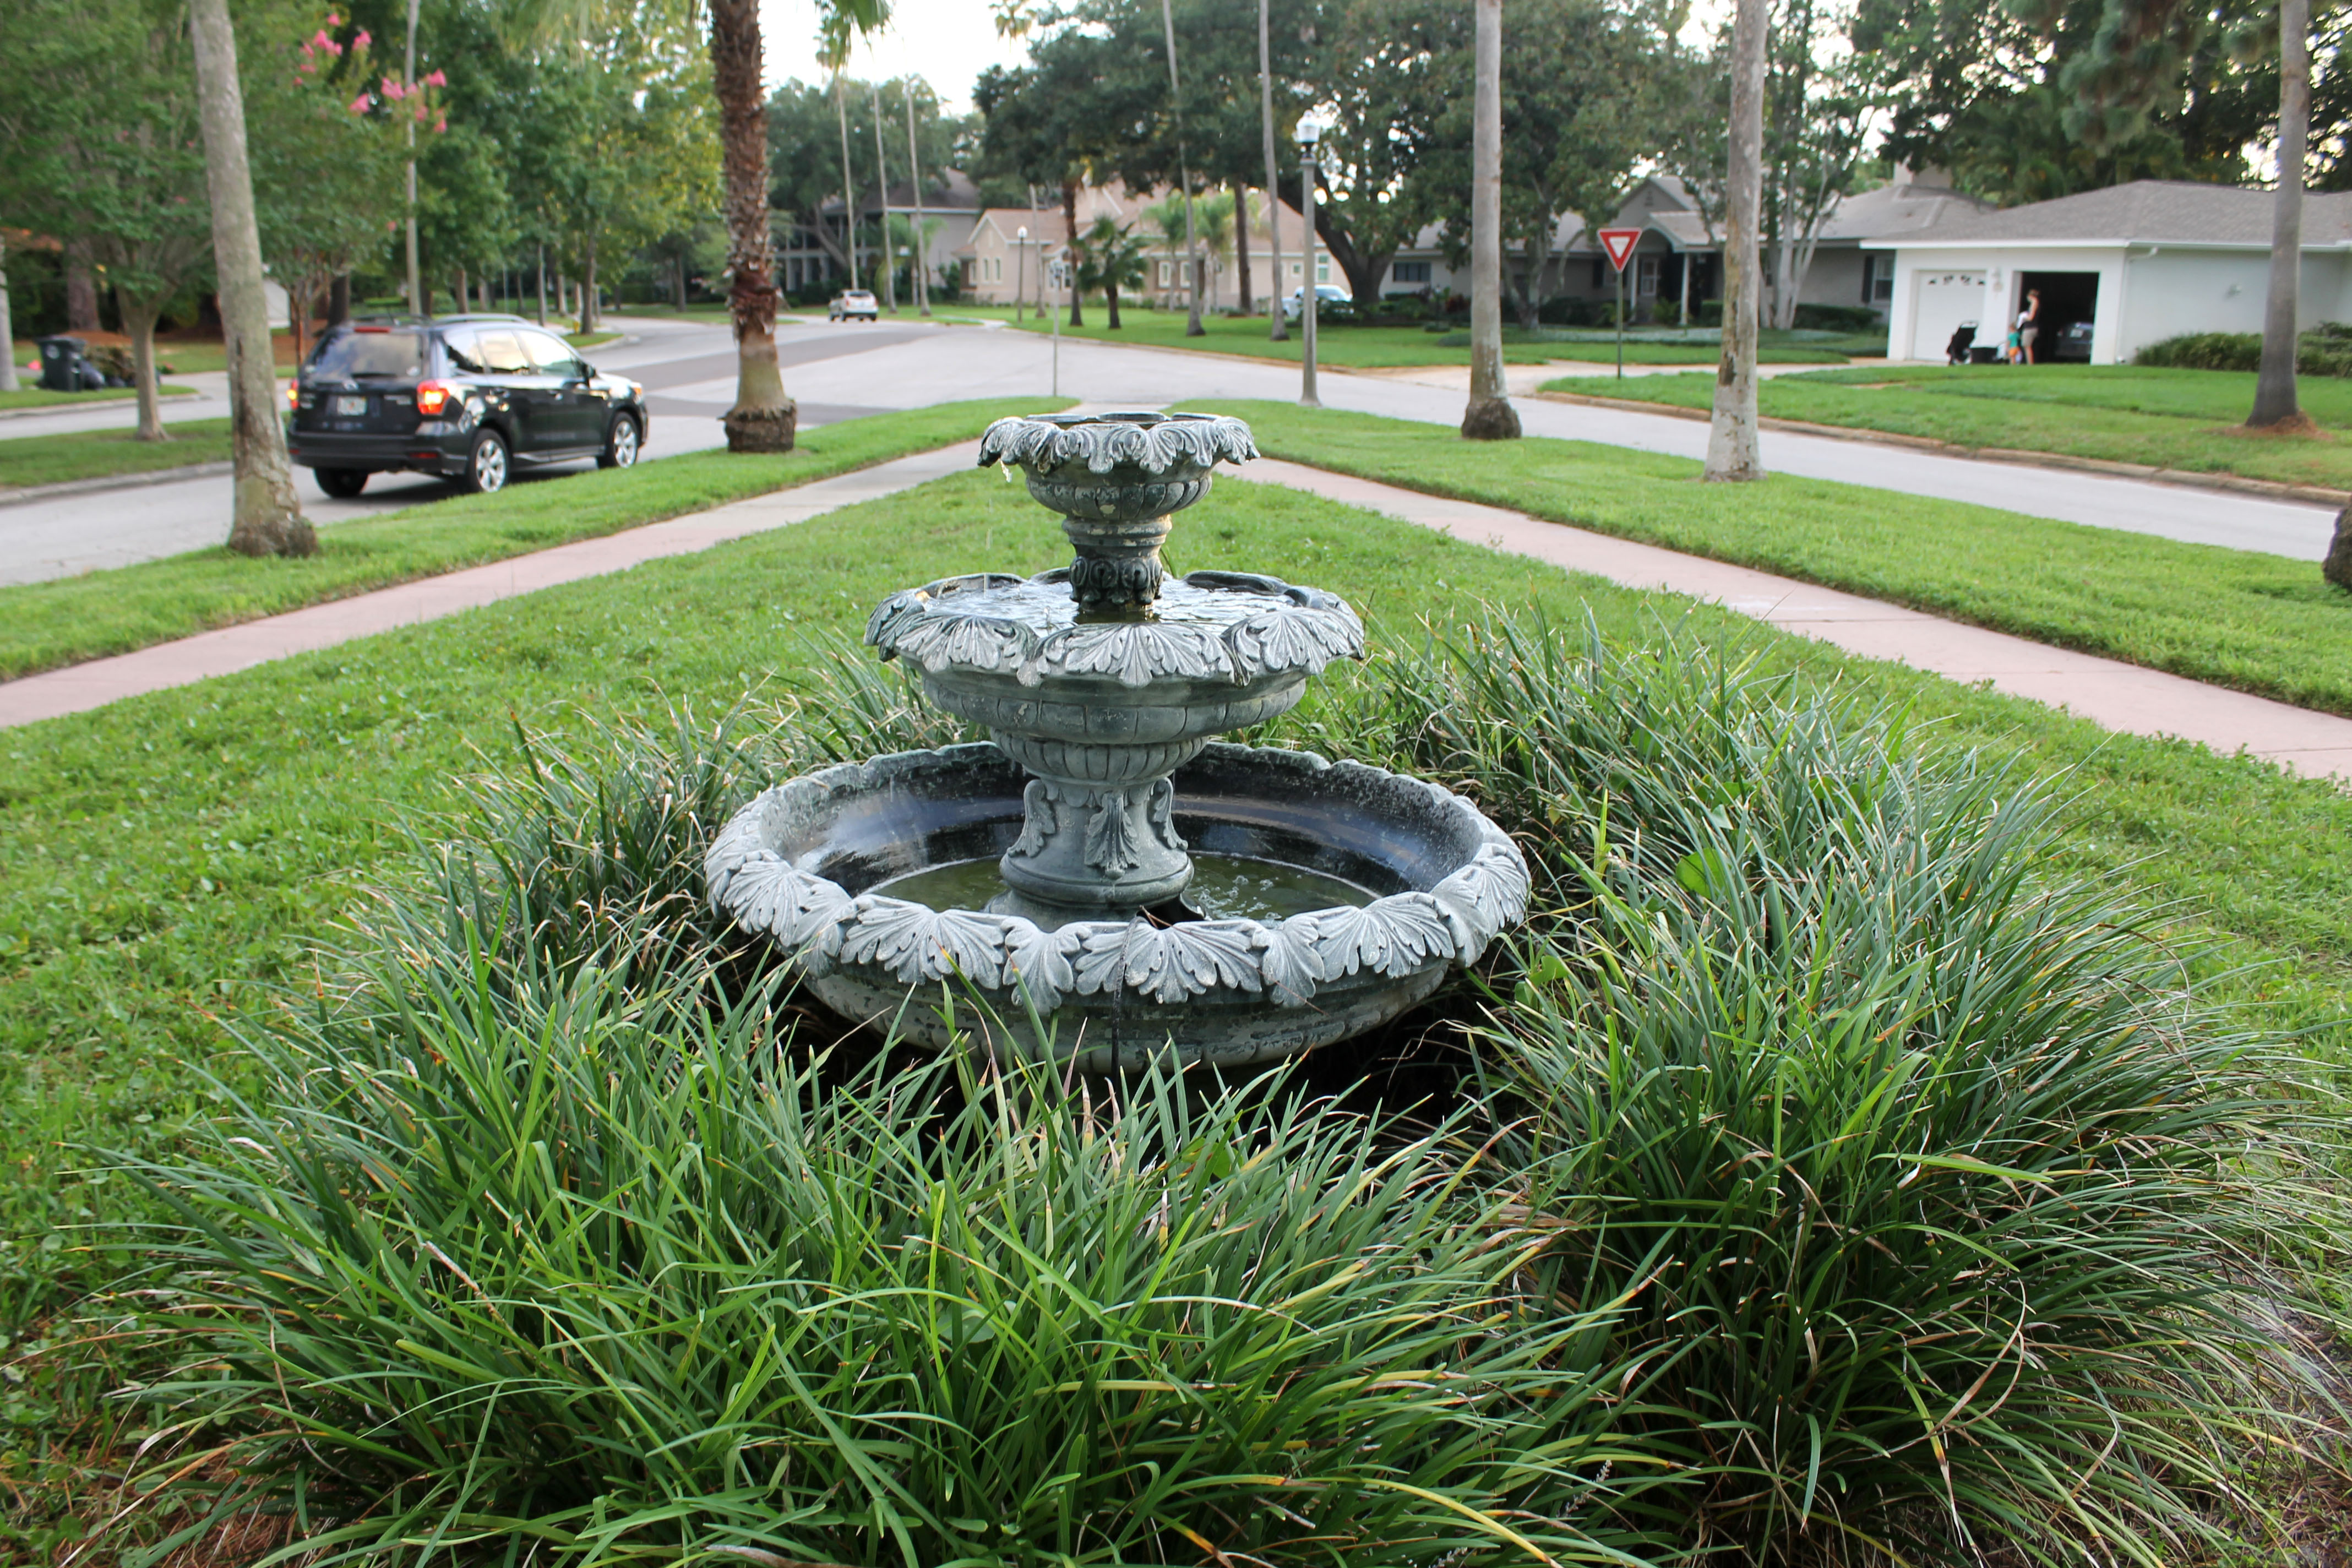 A three-tiered fountain in Pine Park with plants around it